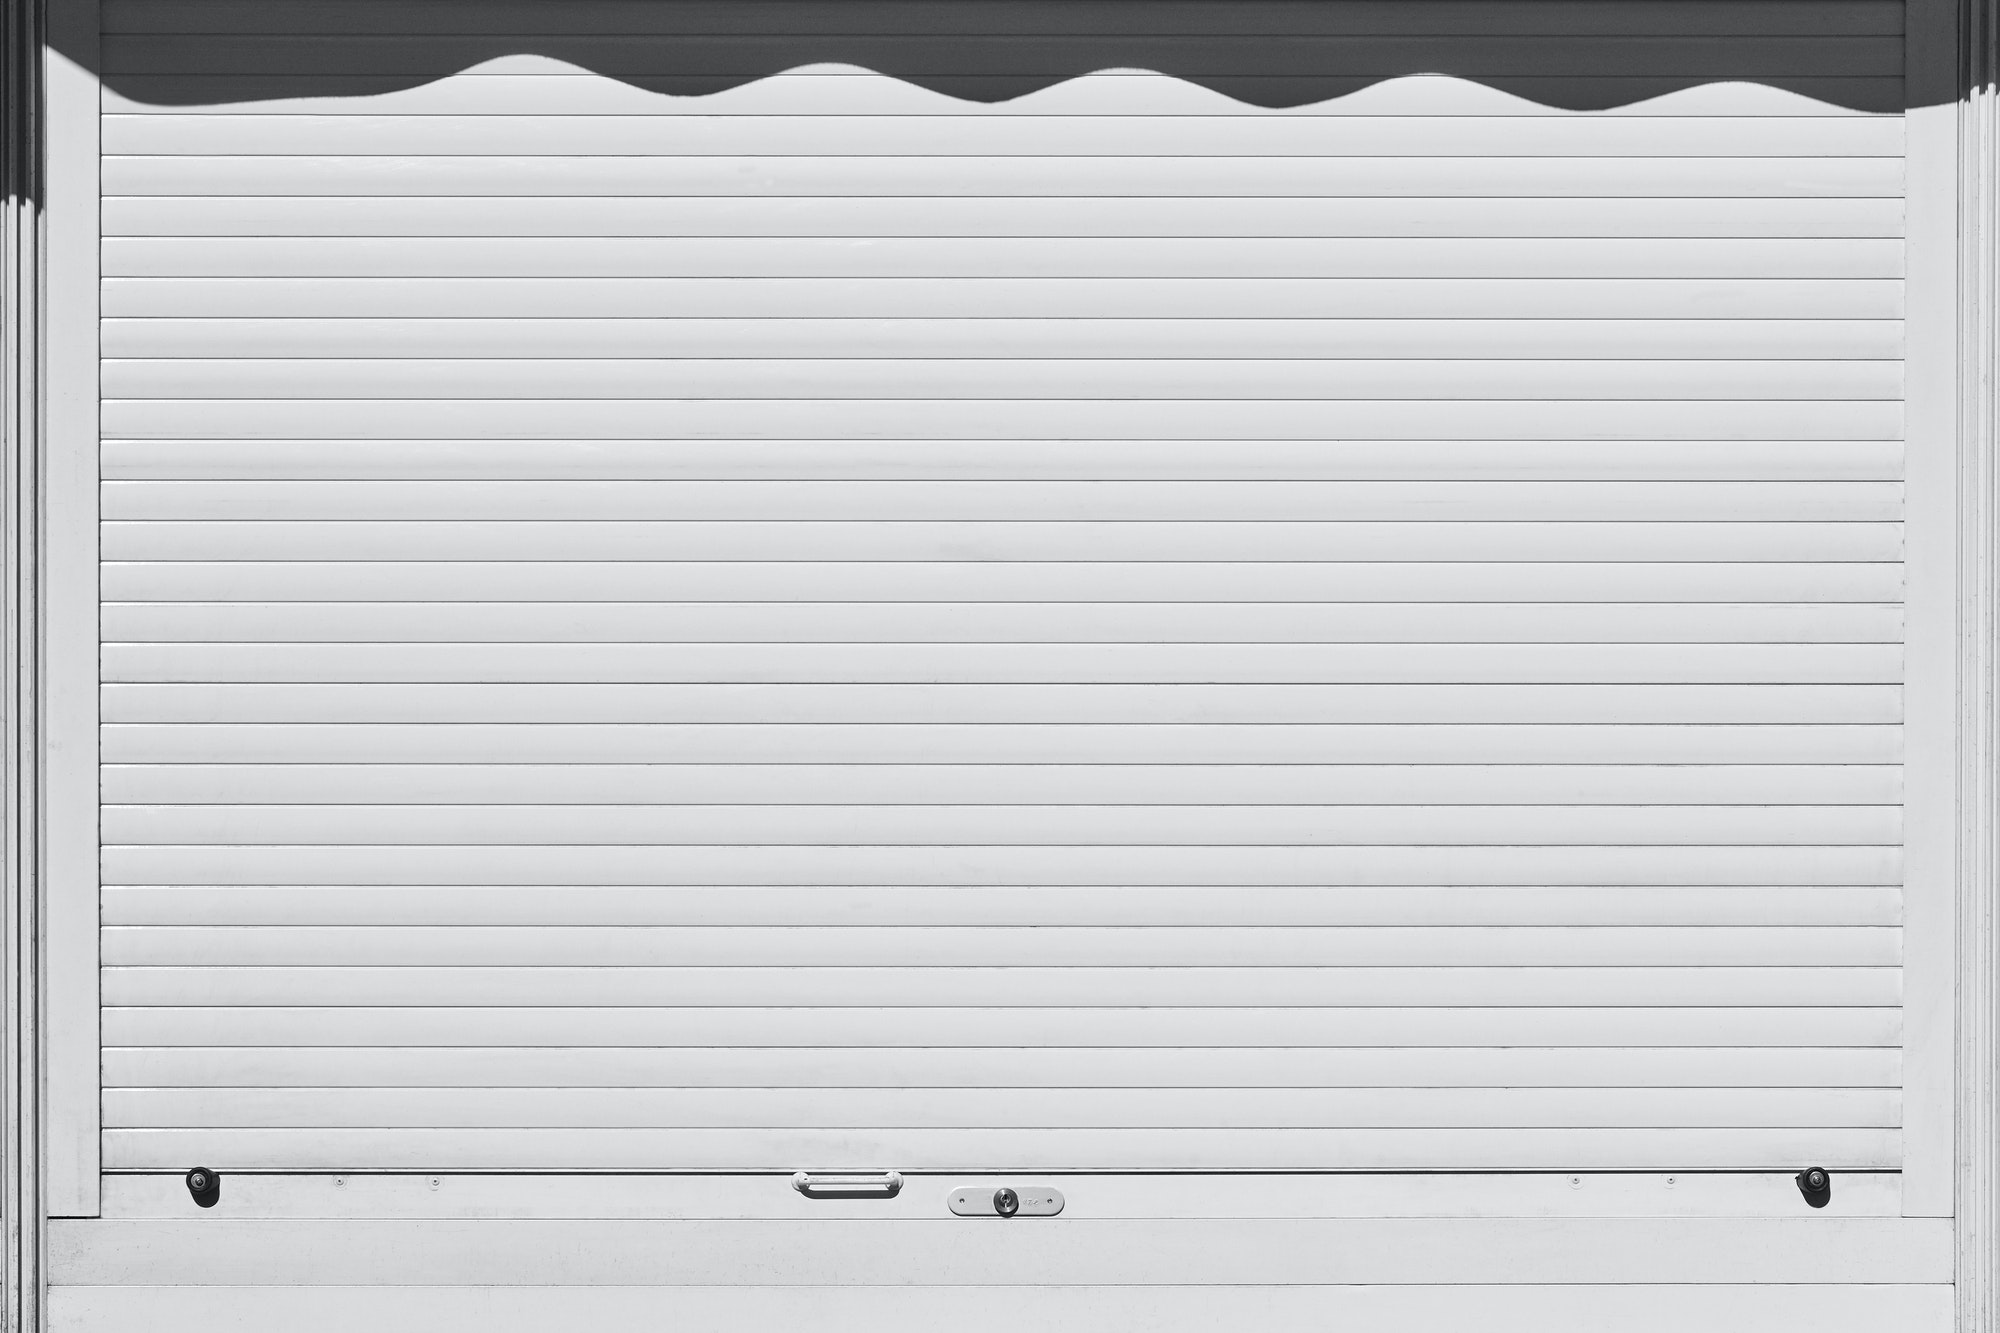 Closed and locked white rolling shutter. Security background. Horizontal